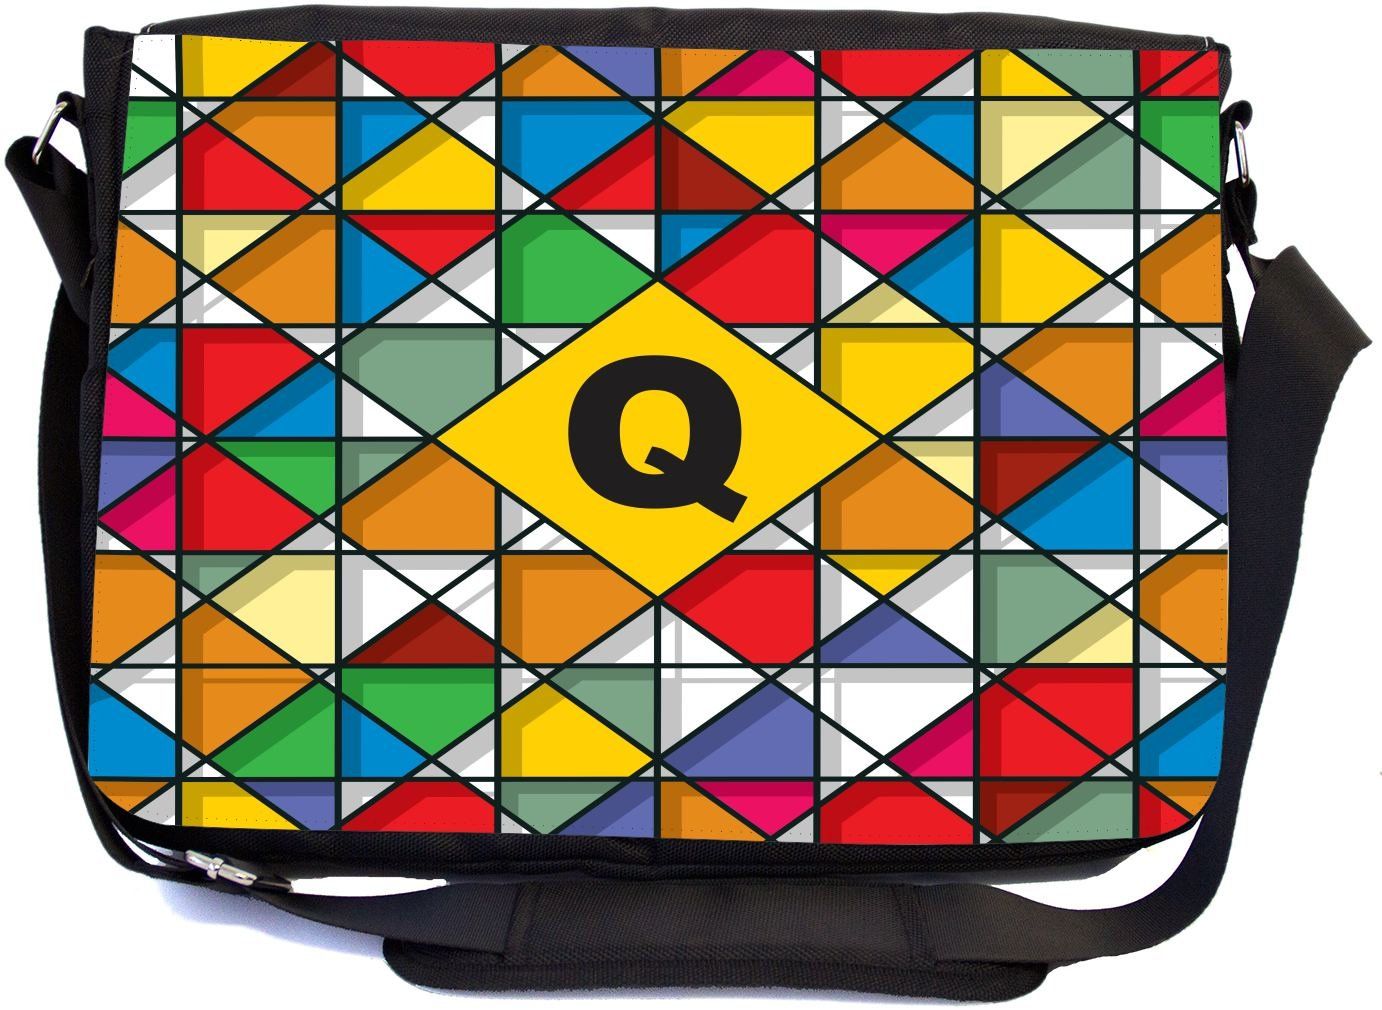 Rikki Knight Letter Q Monogram Vibrant Colors Stained Glass Design Design Combo Multifunction Messenger Laptop Bag - with Padded Insert for School or Work - Includes Wristlet & Mirror